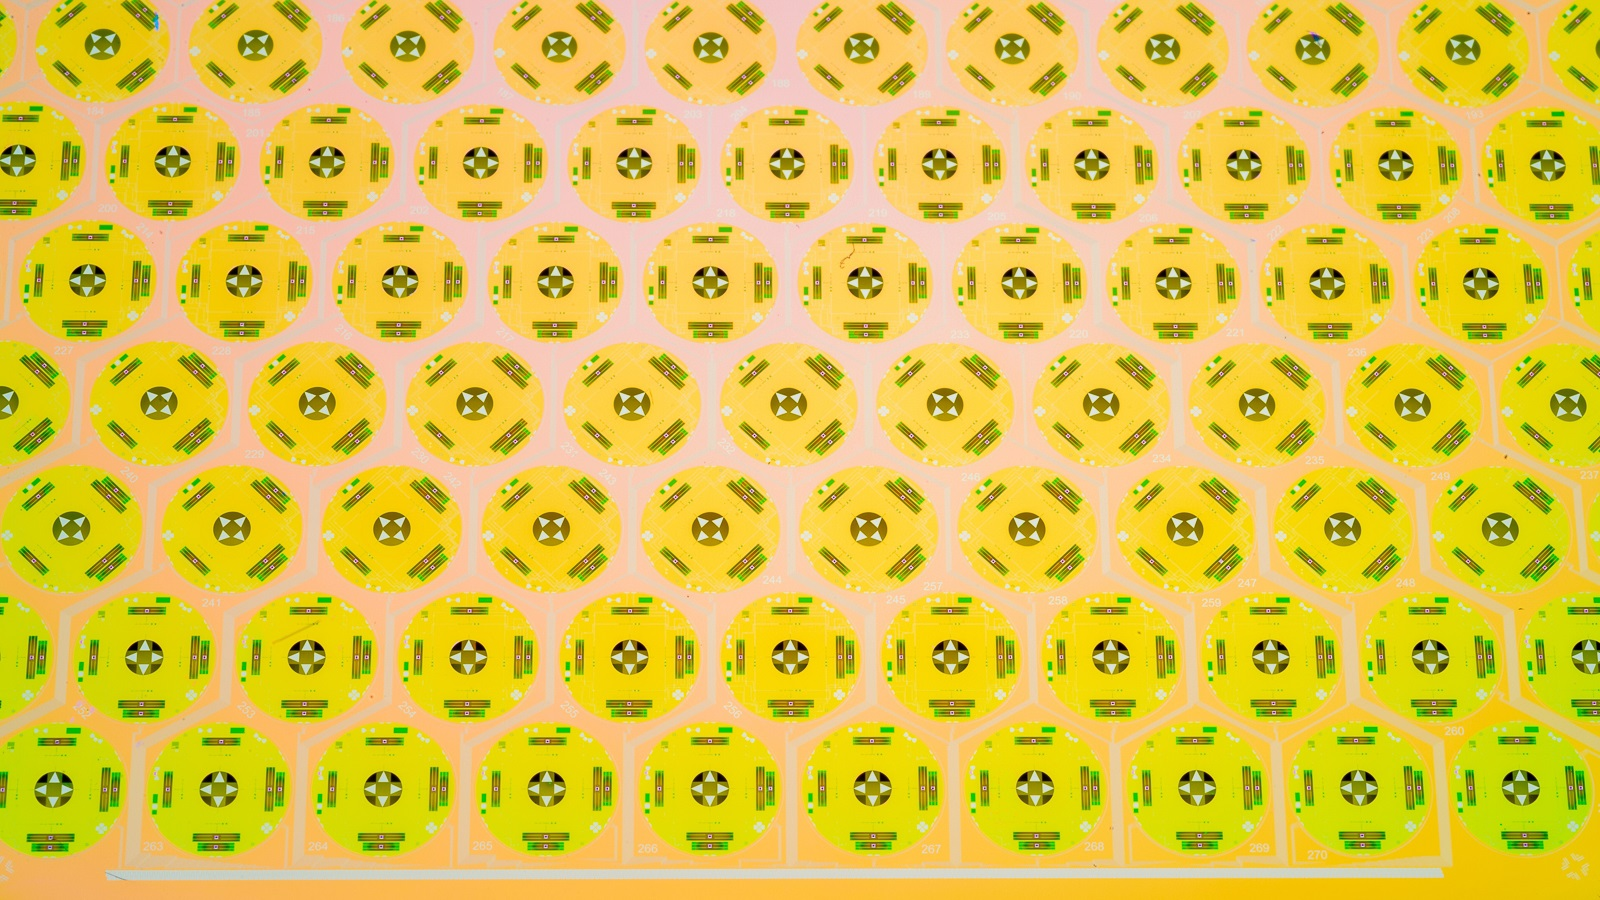 Yellow and green pattern. (Image by Argonne National Laboratory.)